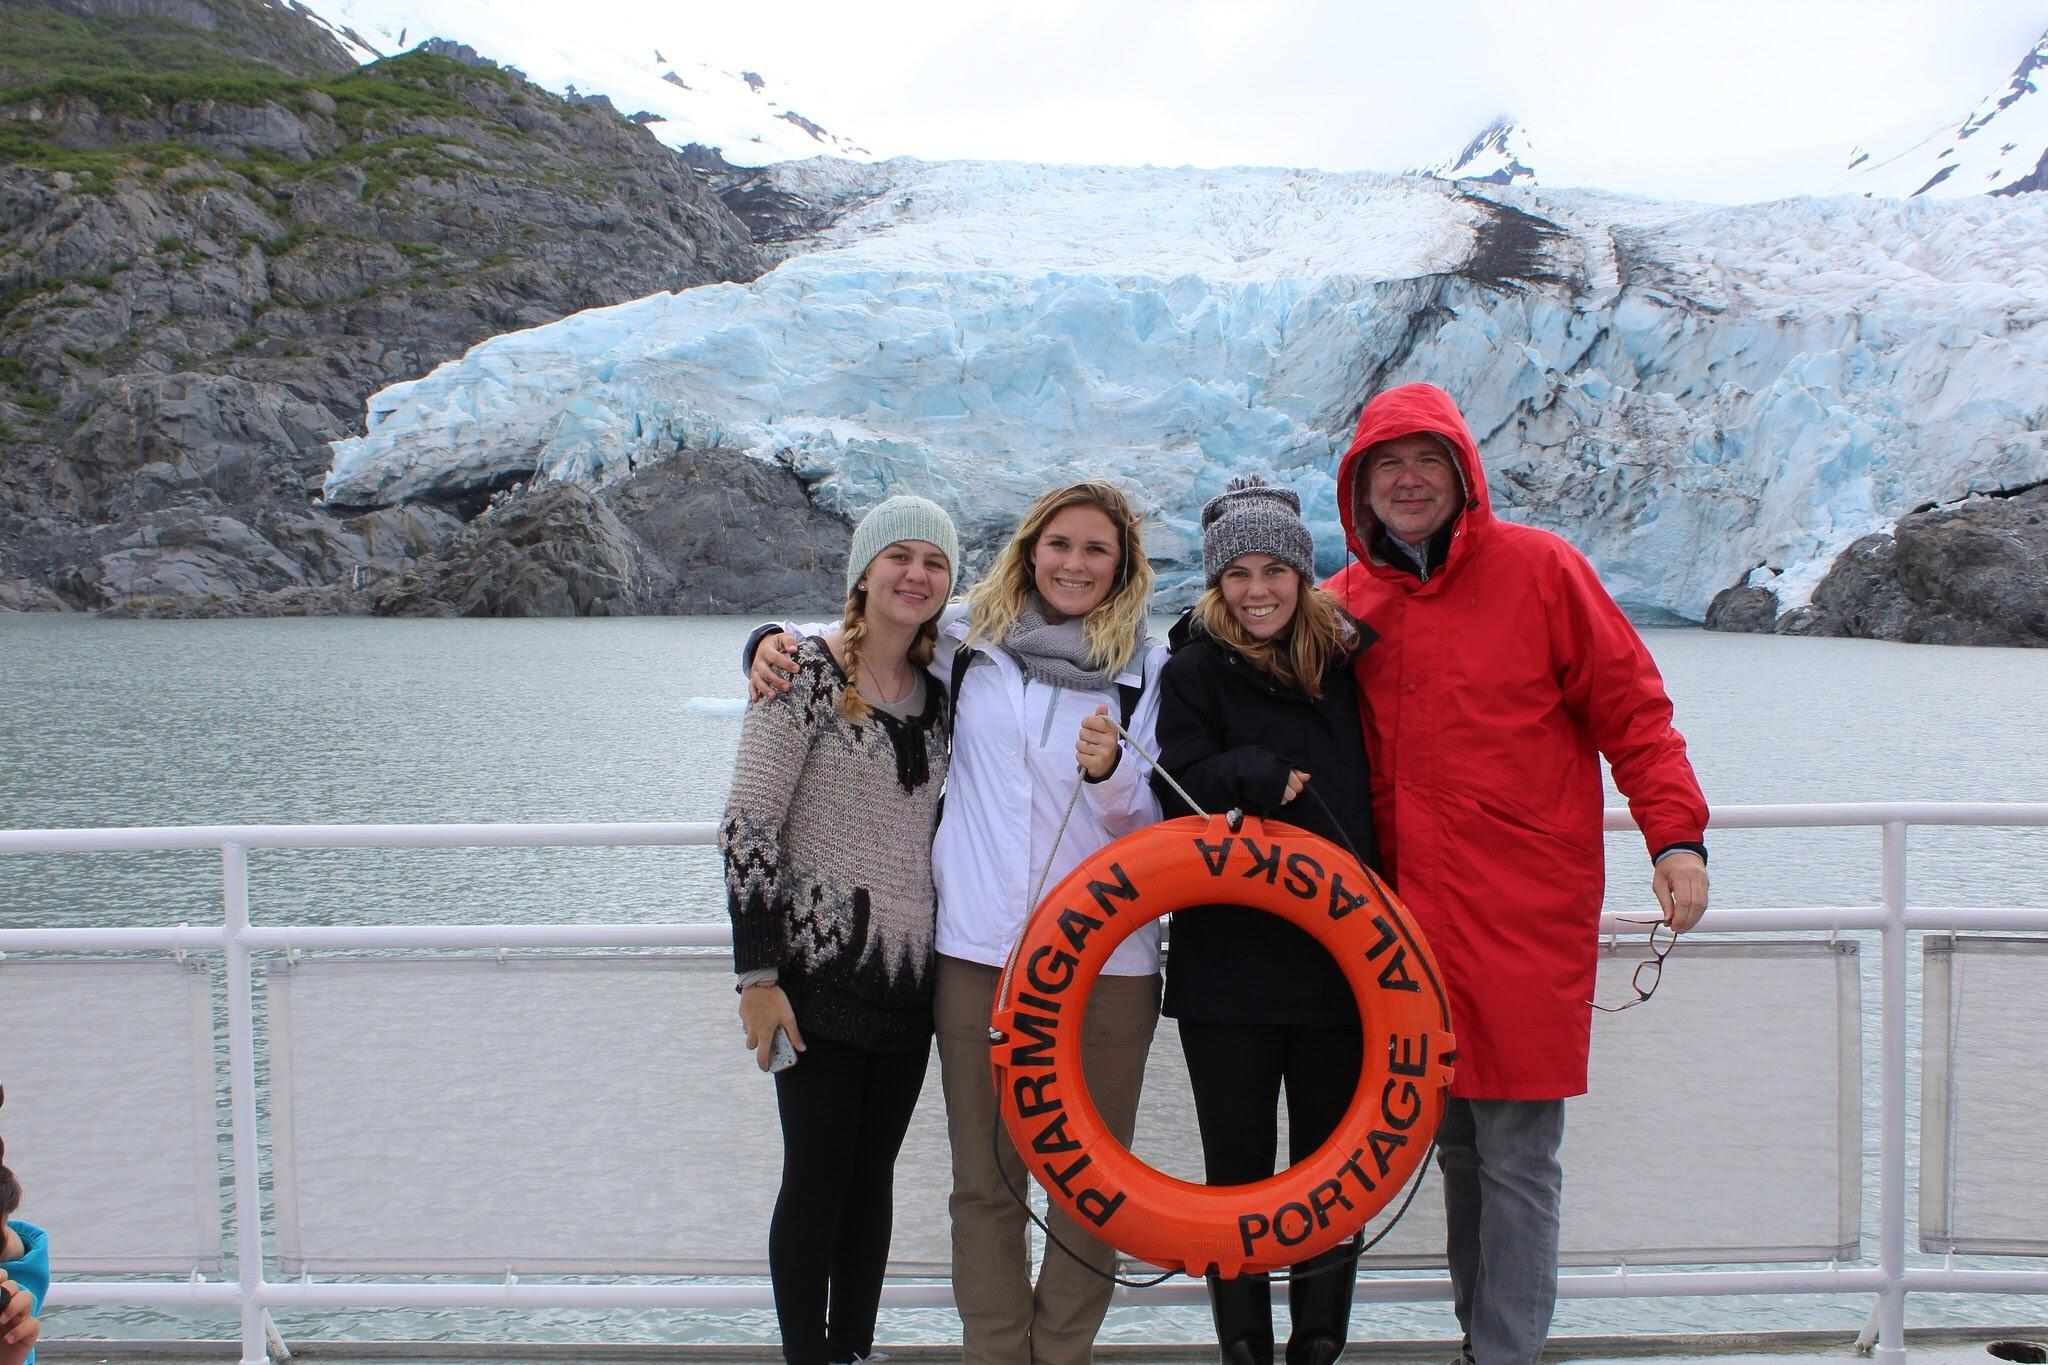 From left to right: Olivia Jackiewicz, Tera Trujillo, Kirsten Von Meter and Ed Jackiewicz at the Portage Glacier in Alaska. Photo credit: Kirsten Von Meter